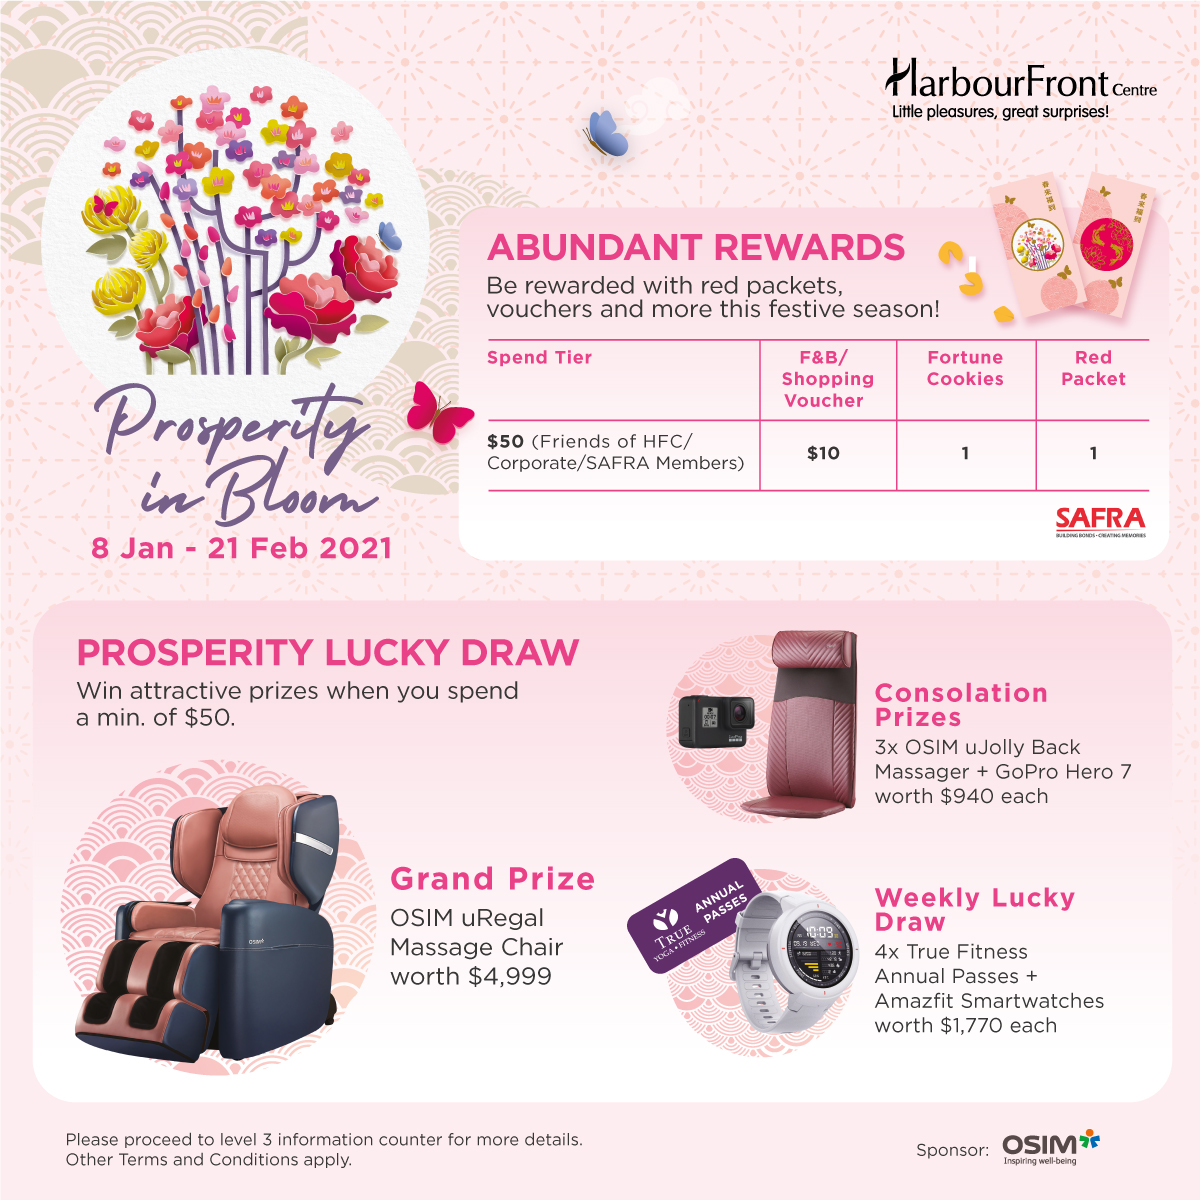 HARBOURFRONT CENTRE - Redeem 1 Red Packet Set, 1 Fortune Cookie, a $10 Shopping Voucher (Min. Spend $50) & Double Chances in Lucky Draw